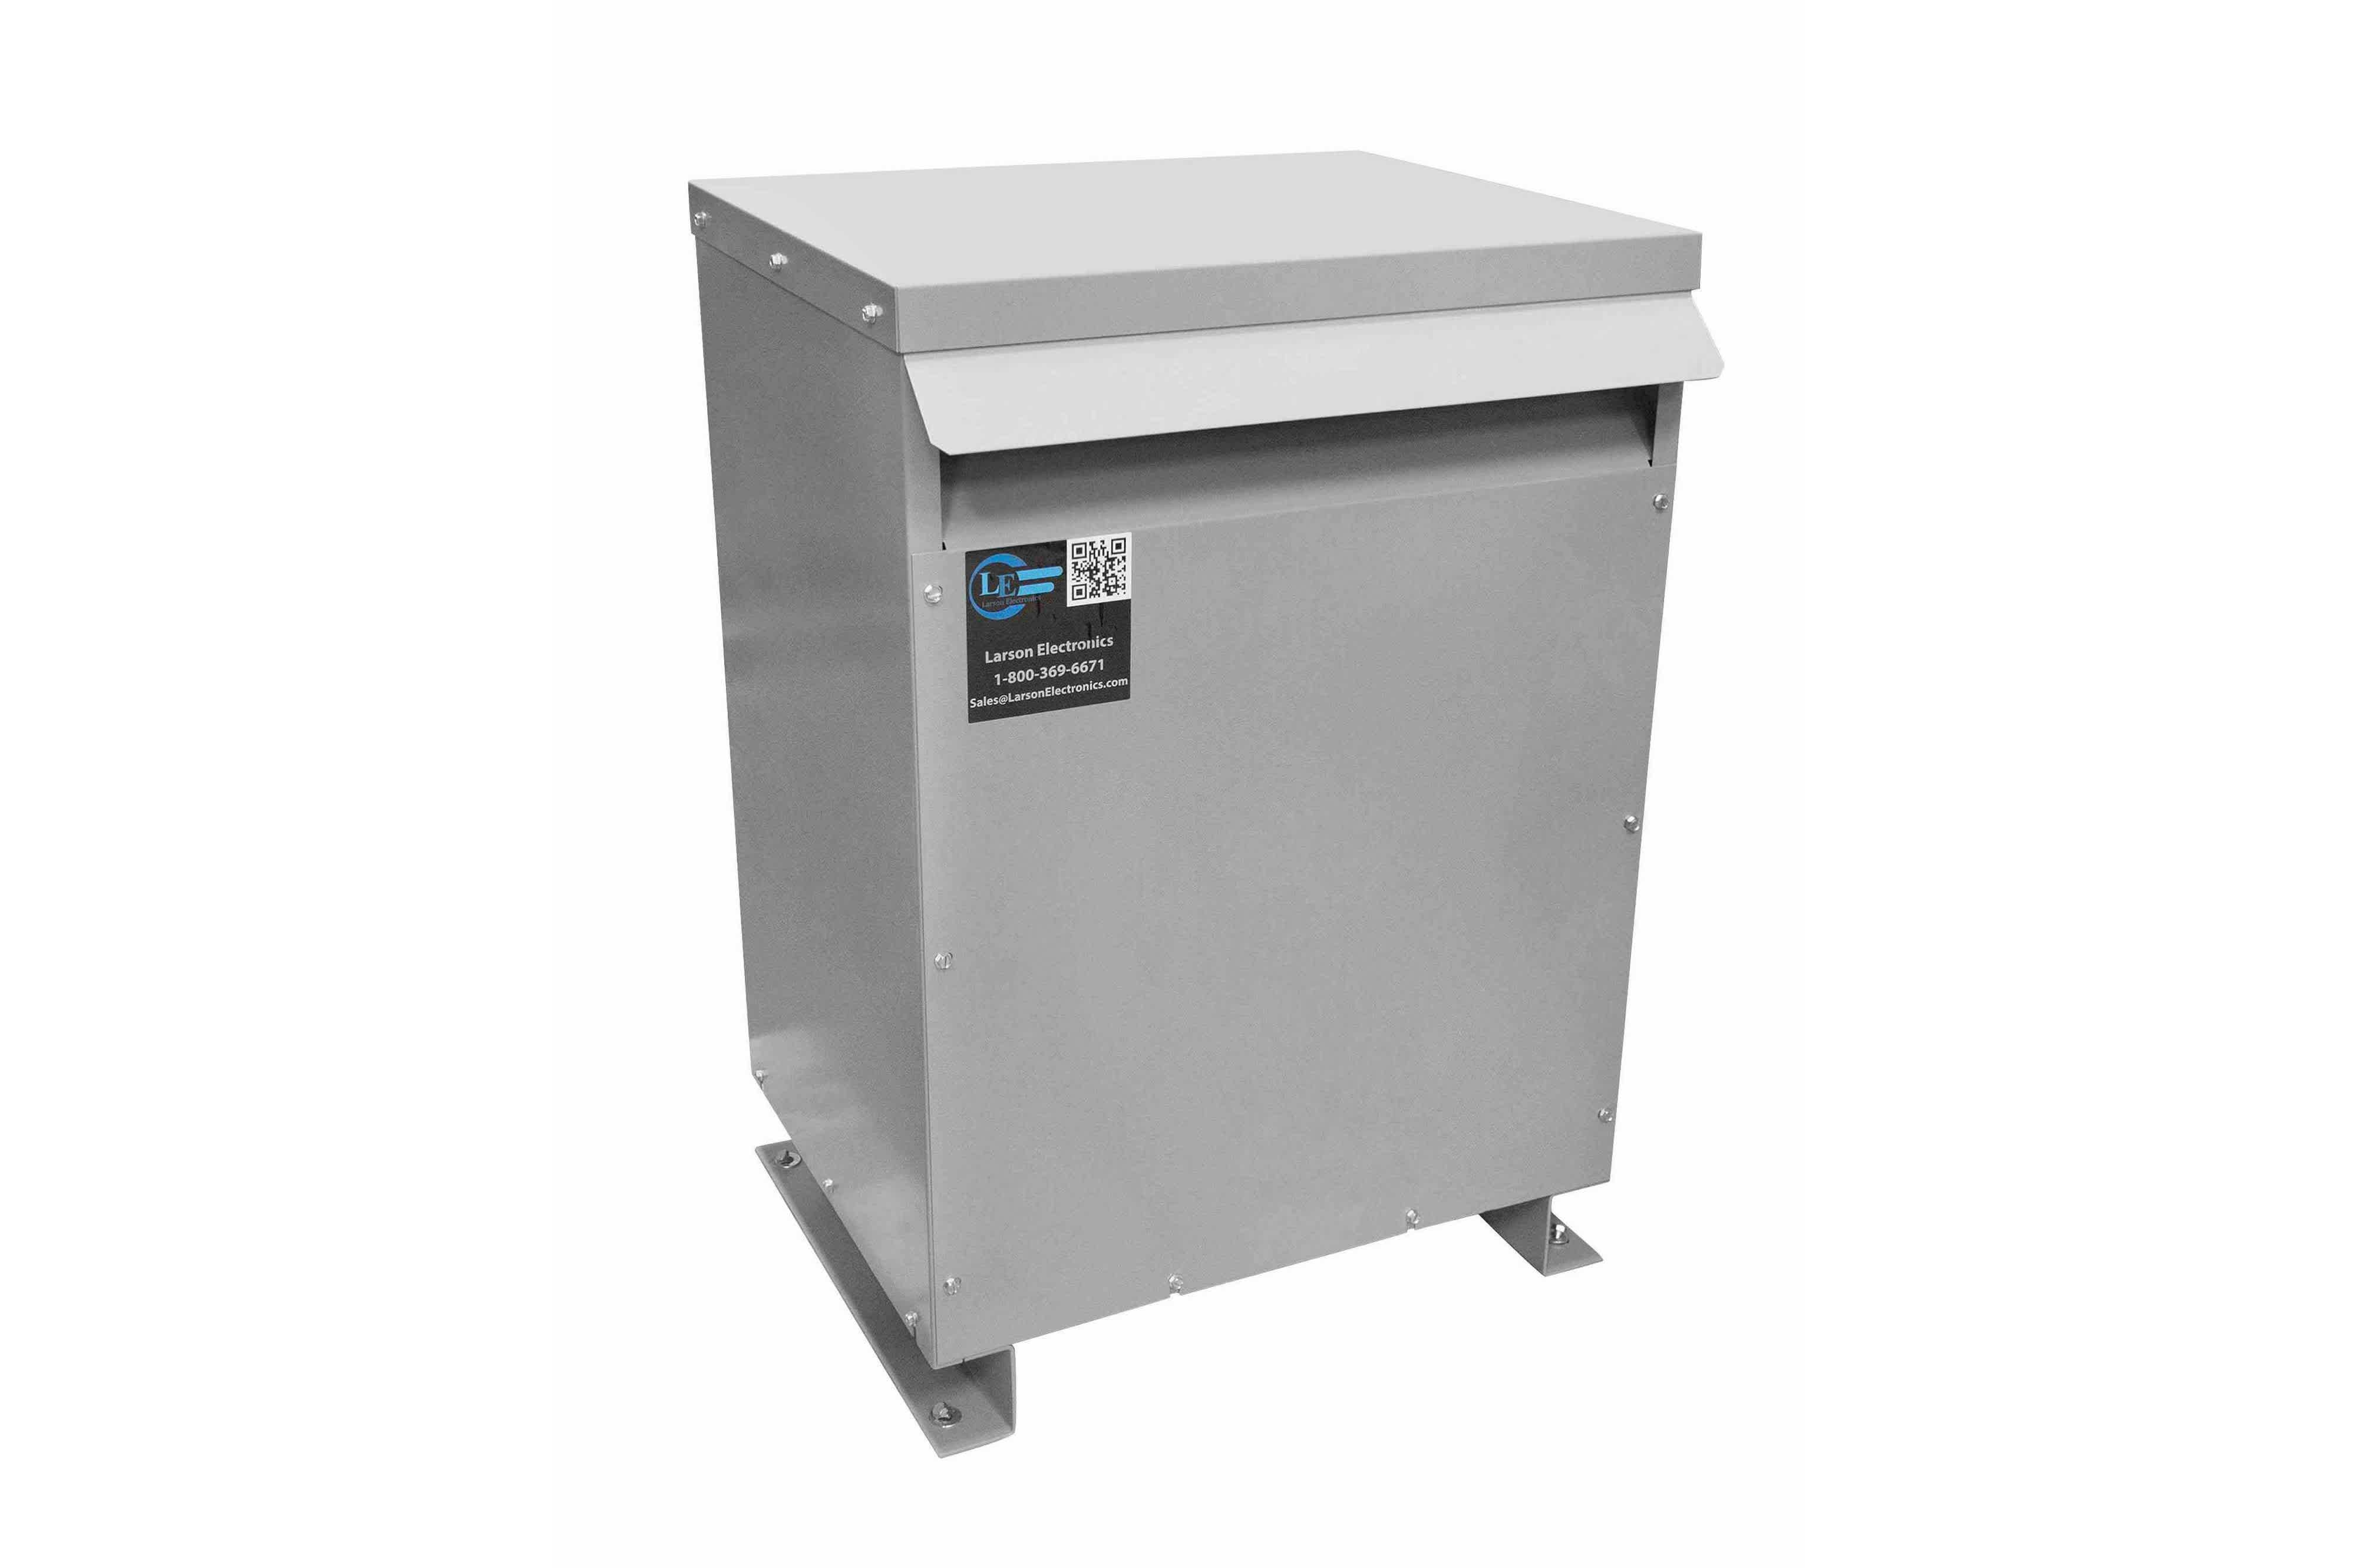 13 kVA 3PH Isolation Transformer, 480V Delta Primary, 600V Delta Secondary, N3R, Ventilated, 60 Hz